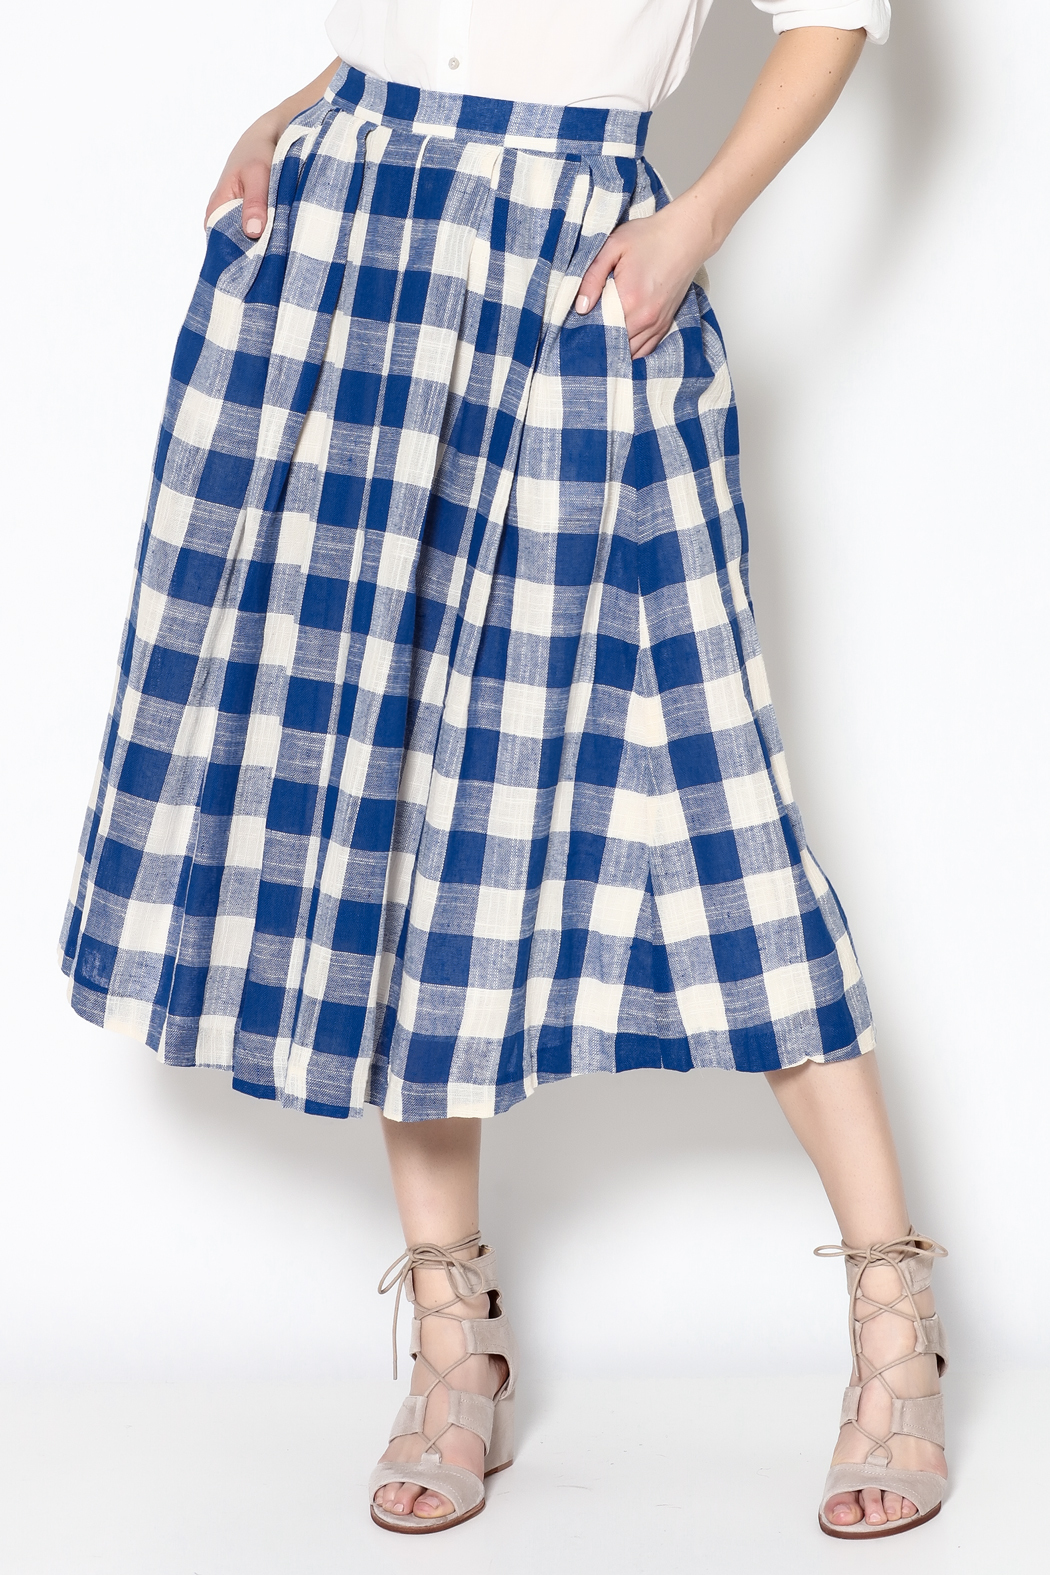 frnch blue gingham skirt from florida by momni shoptiques